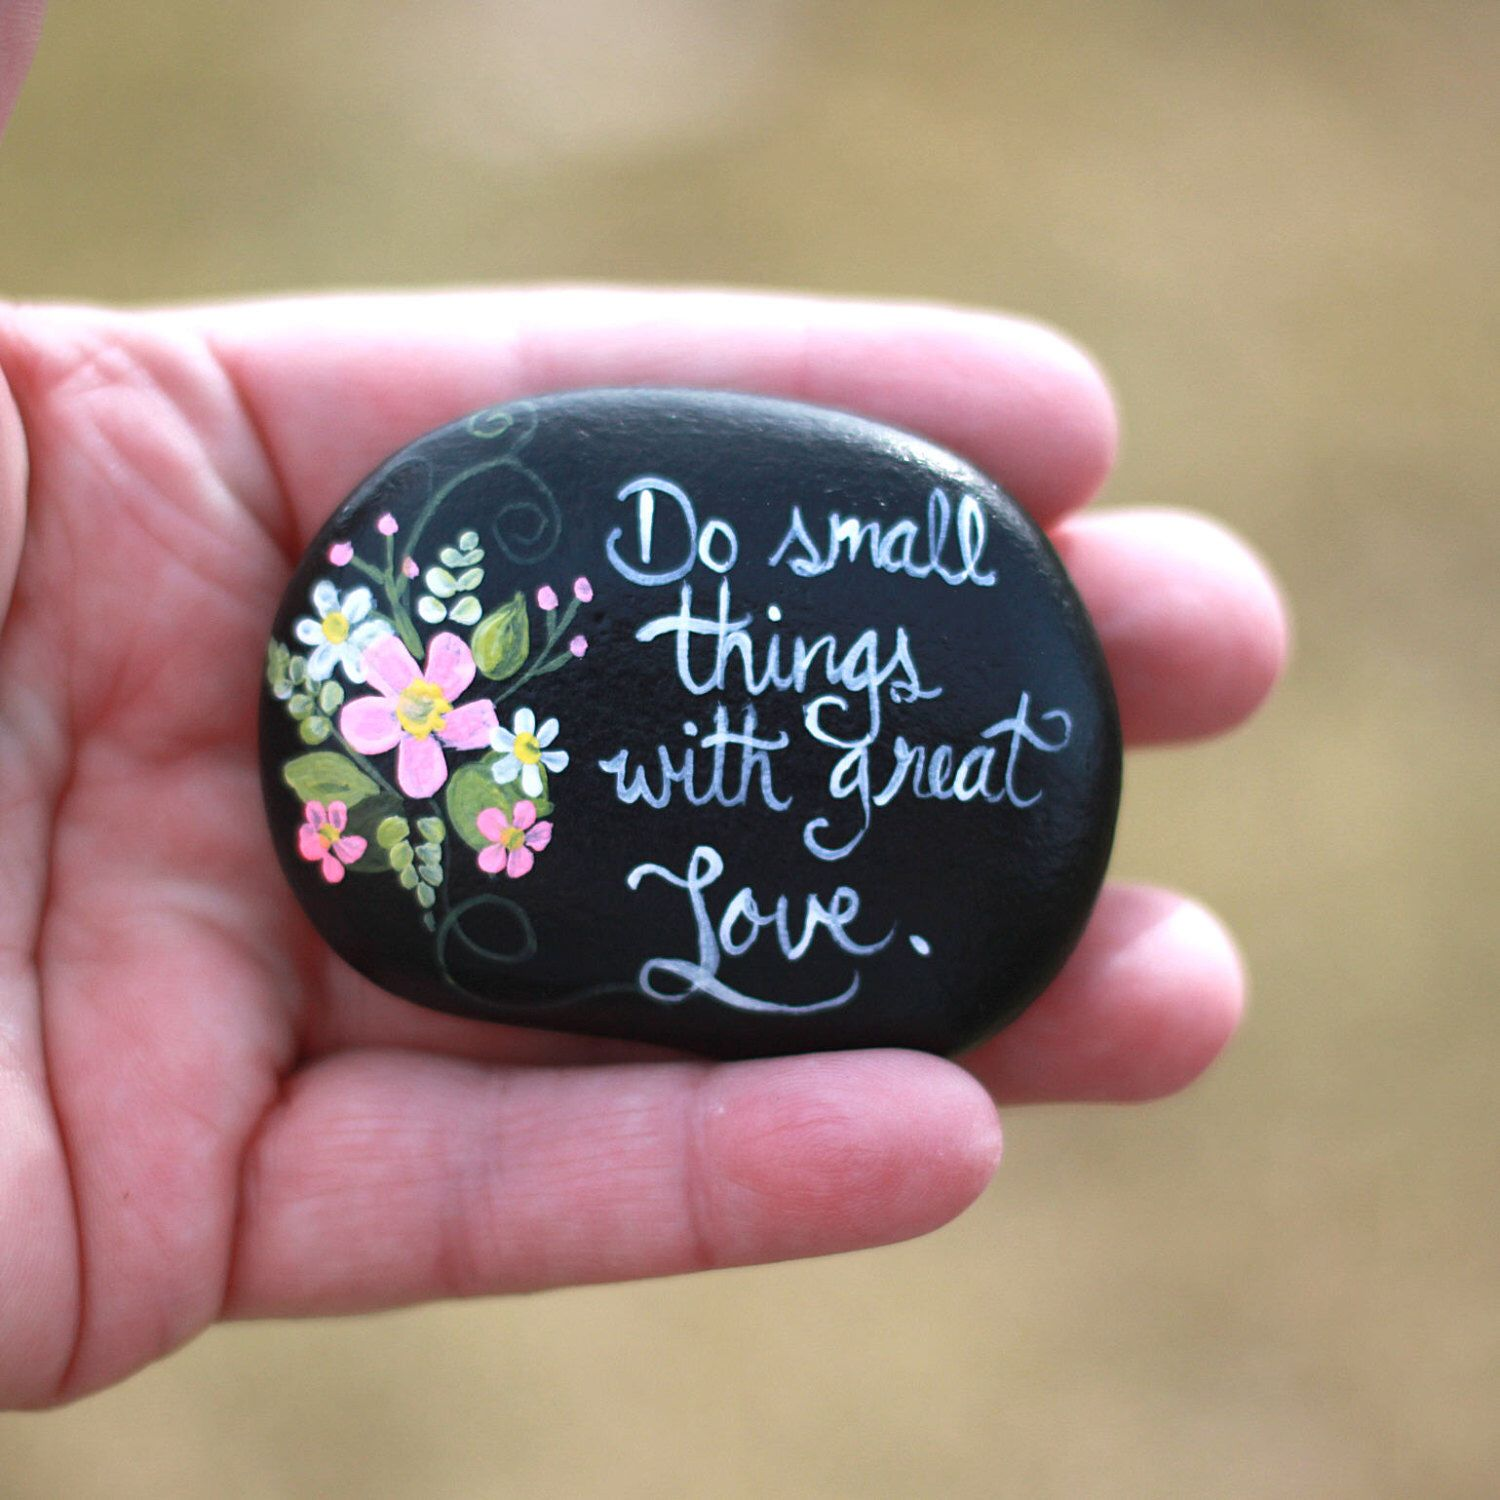 amazing inspiration stone hardworking painted pebble hand painted rock Be kind honest children/'s mental health gift kindness pebble